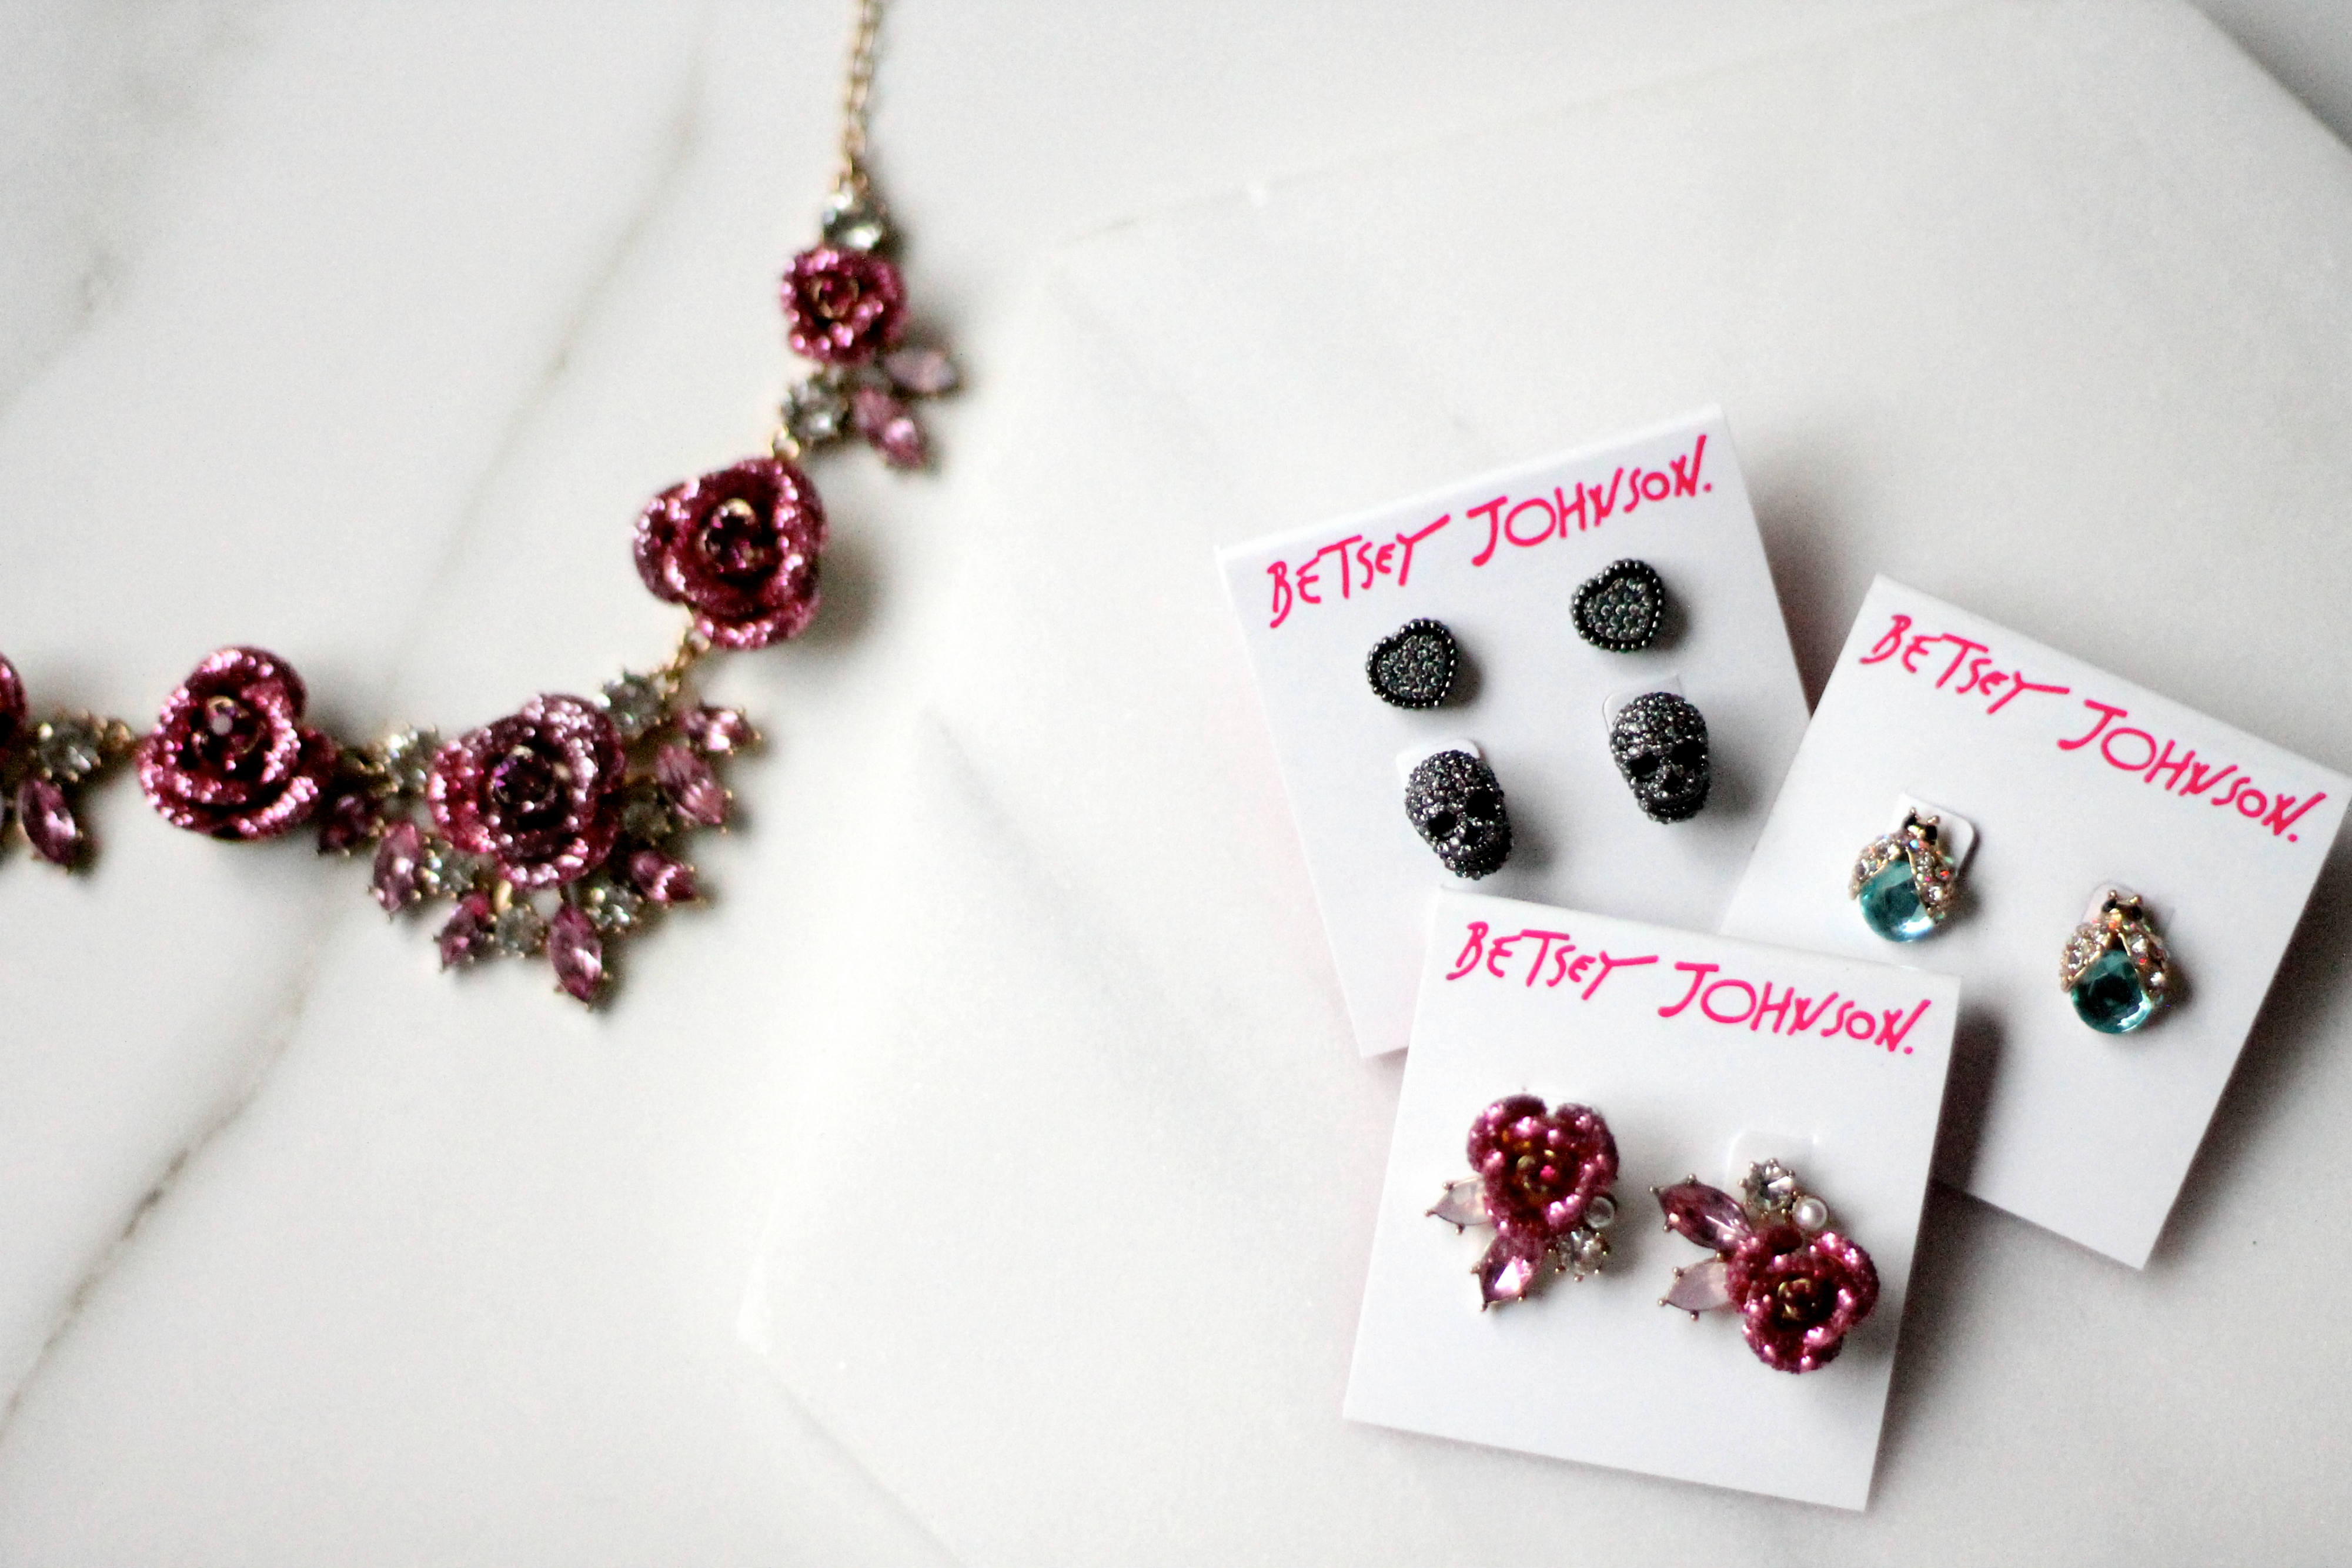 Betsey Johnson Jewelry Earrings and Necklace Arrive At Best Buy